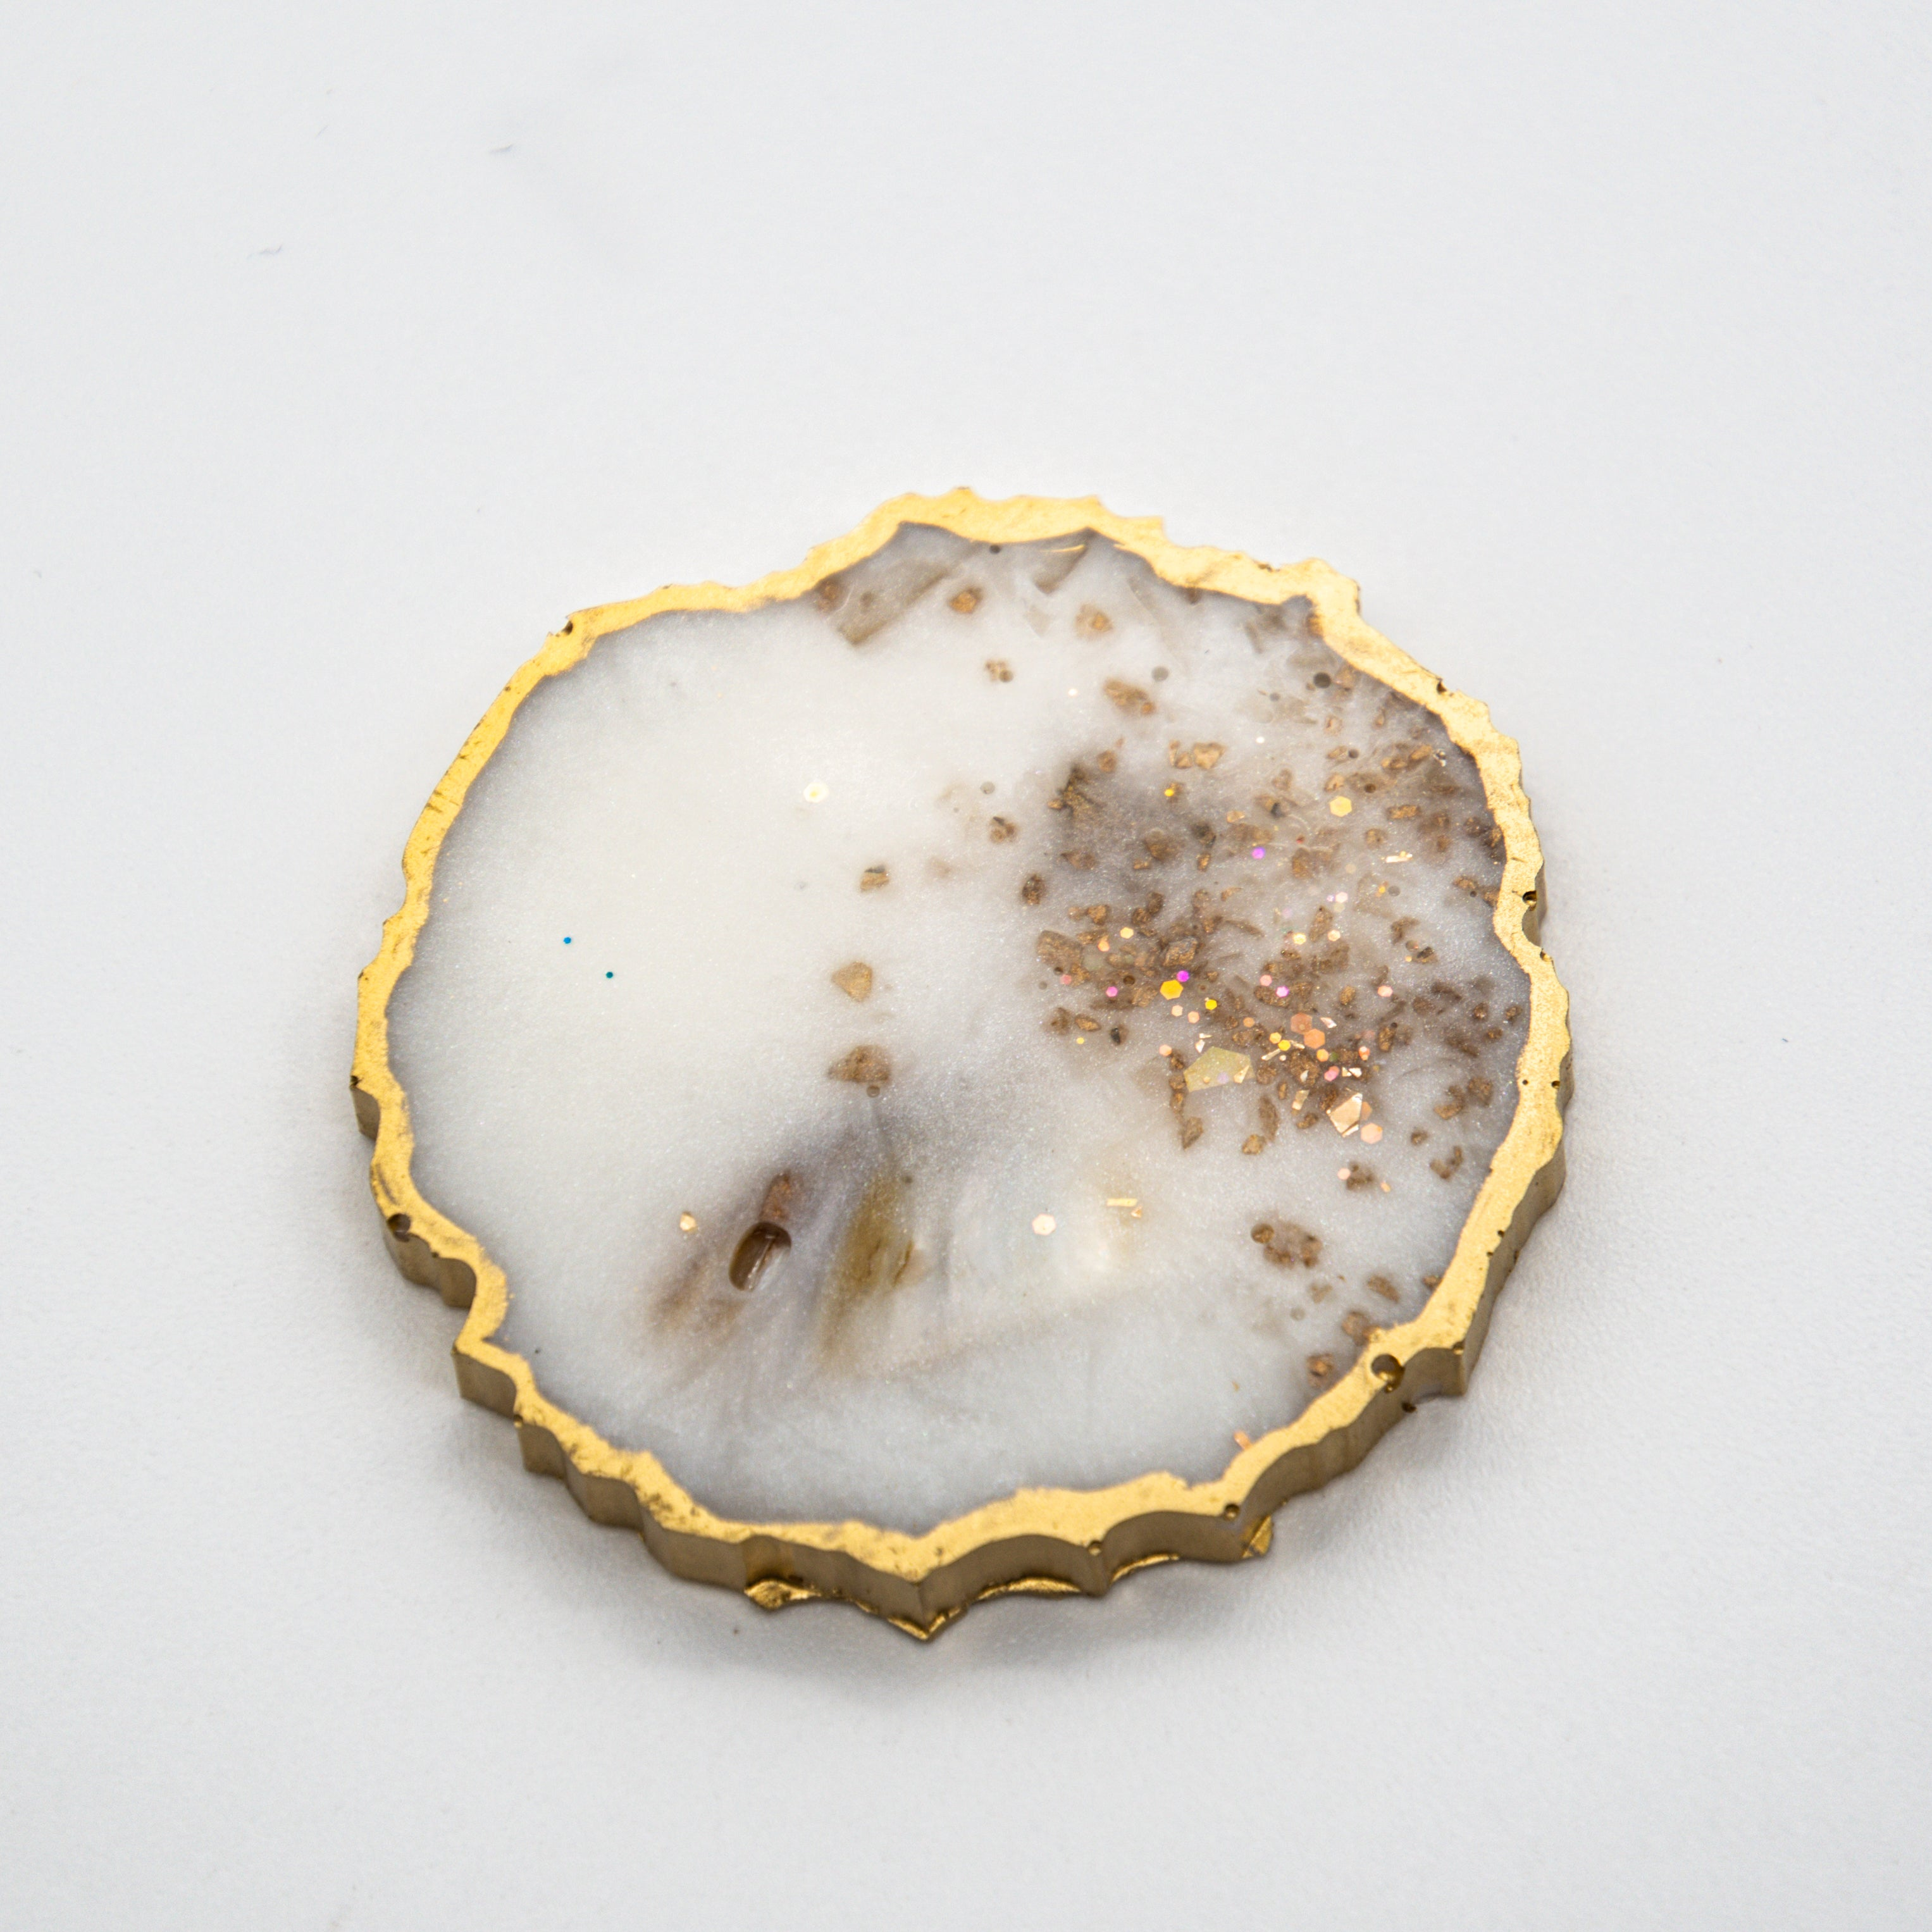 PEARL OPAL MICA WITH GOLD GLITTER AND GOLD EDGING ON YOUR CHOICE OF WHITE OR BLACK BASE